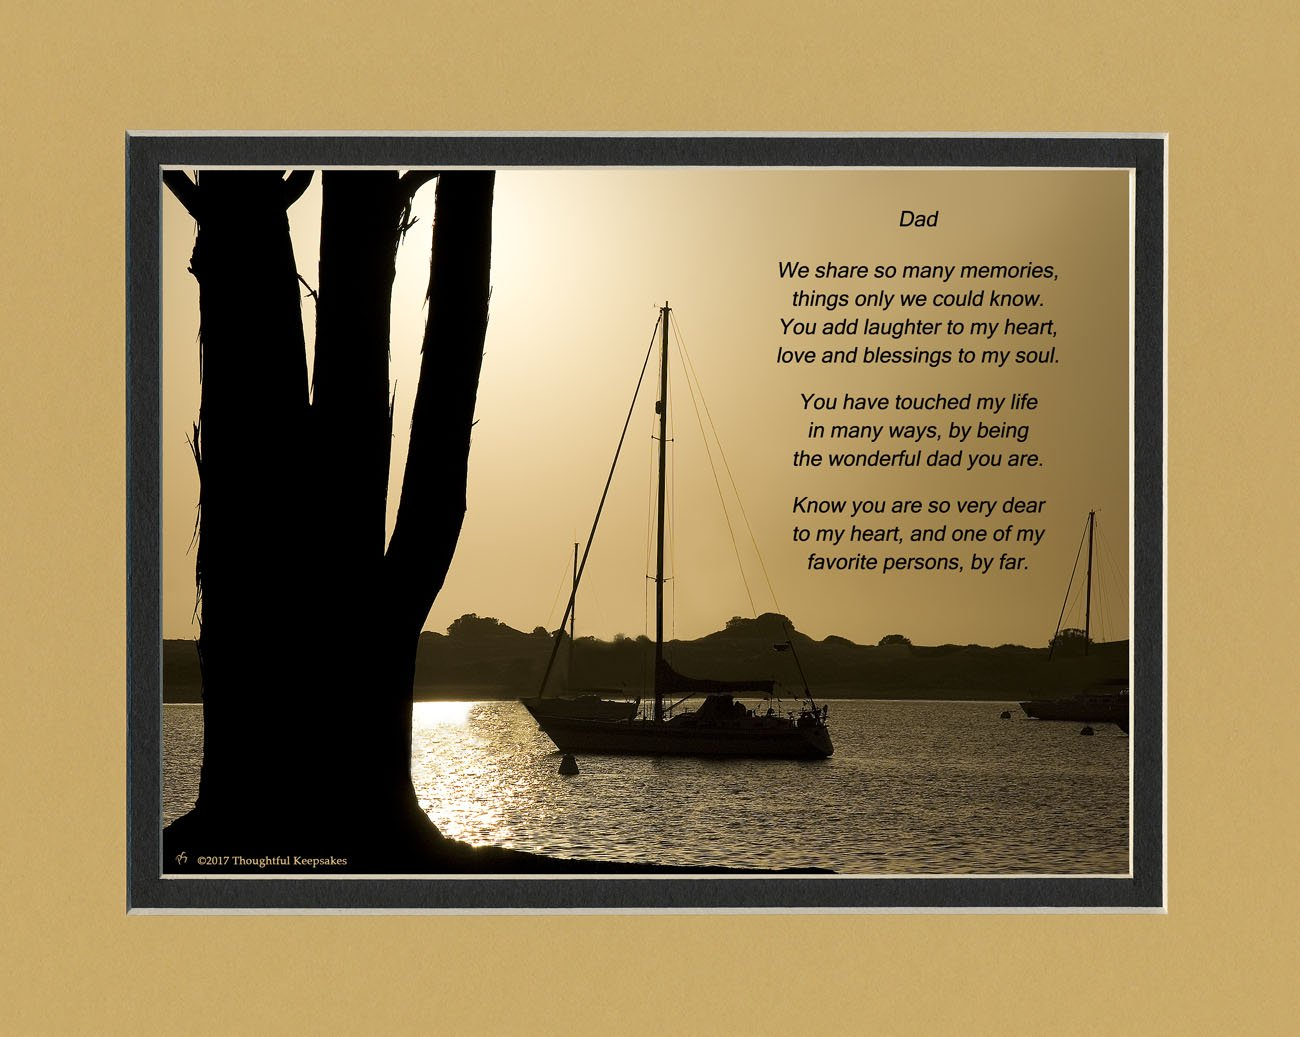 Dad Gift with You Have Touched My Life in Many Ways, By Being the Wonderful Dad You Are Poem. Boats Photo, 8x10 Matted. Special Father's Day, Birthday or for Father